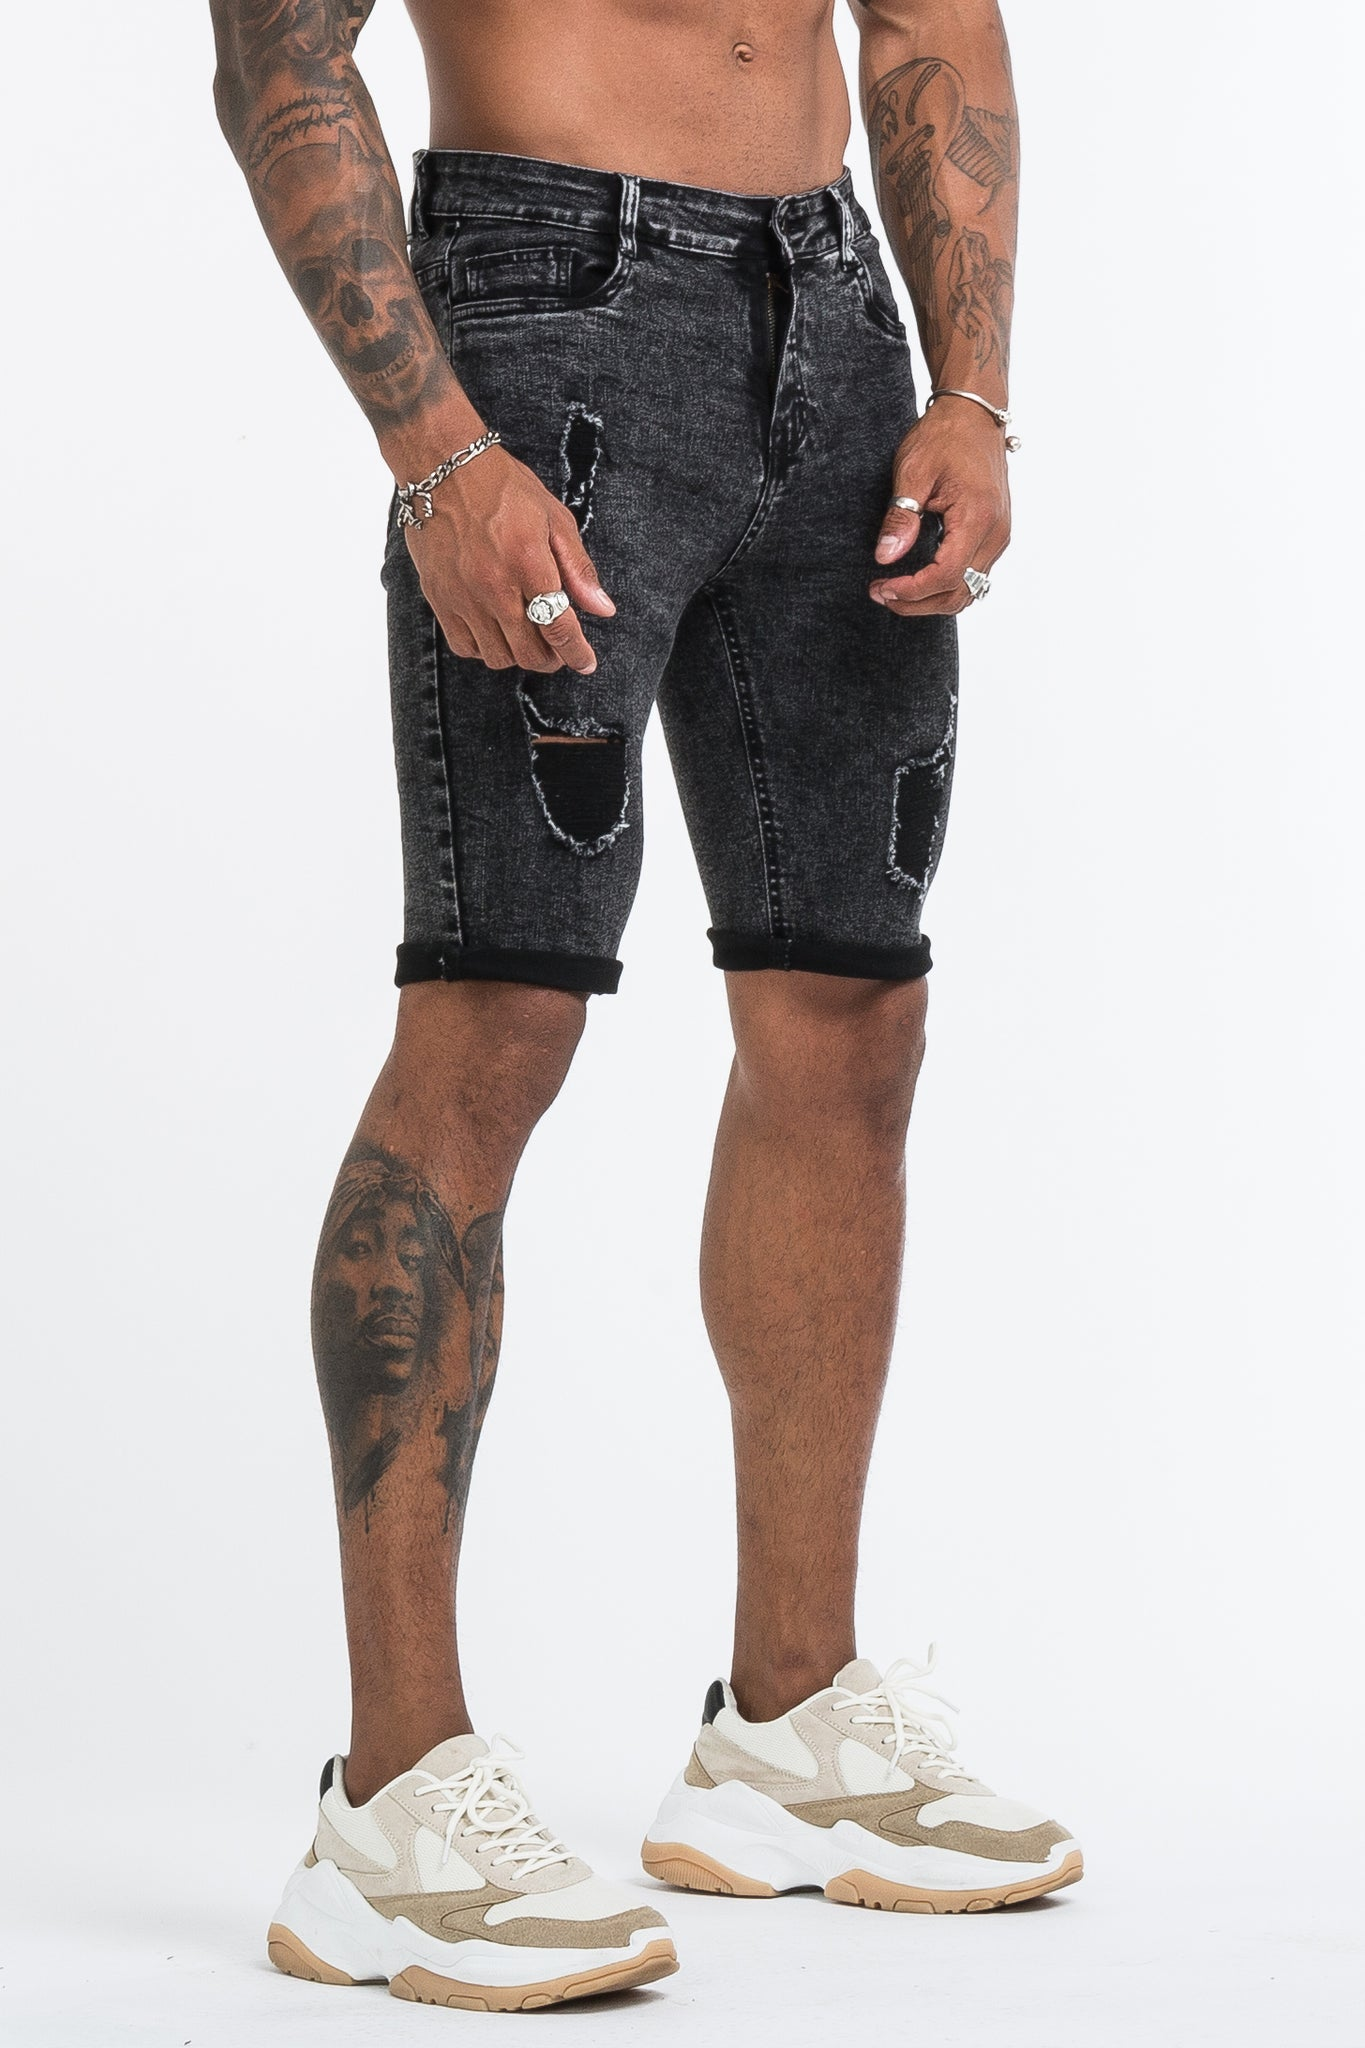 THE MEDUSA 2.0 SHORTS - GREY - ICON. AMSTERDAM